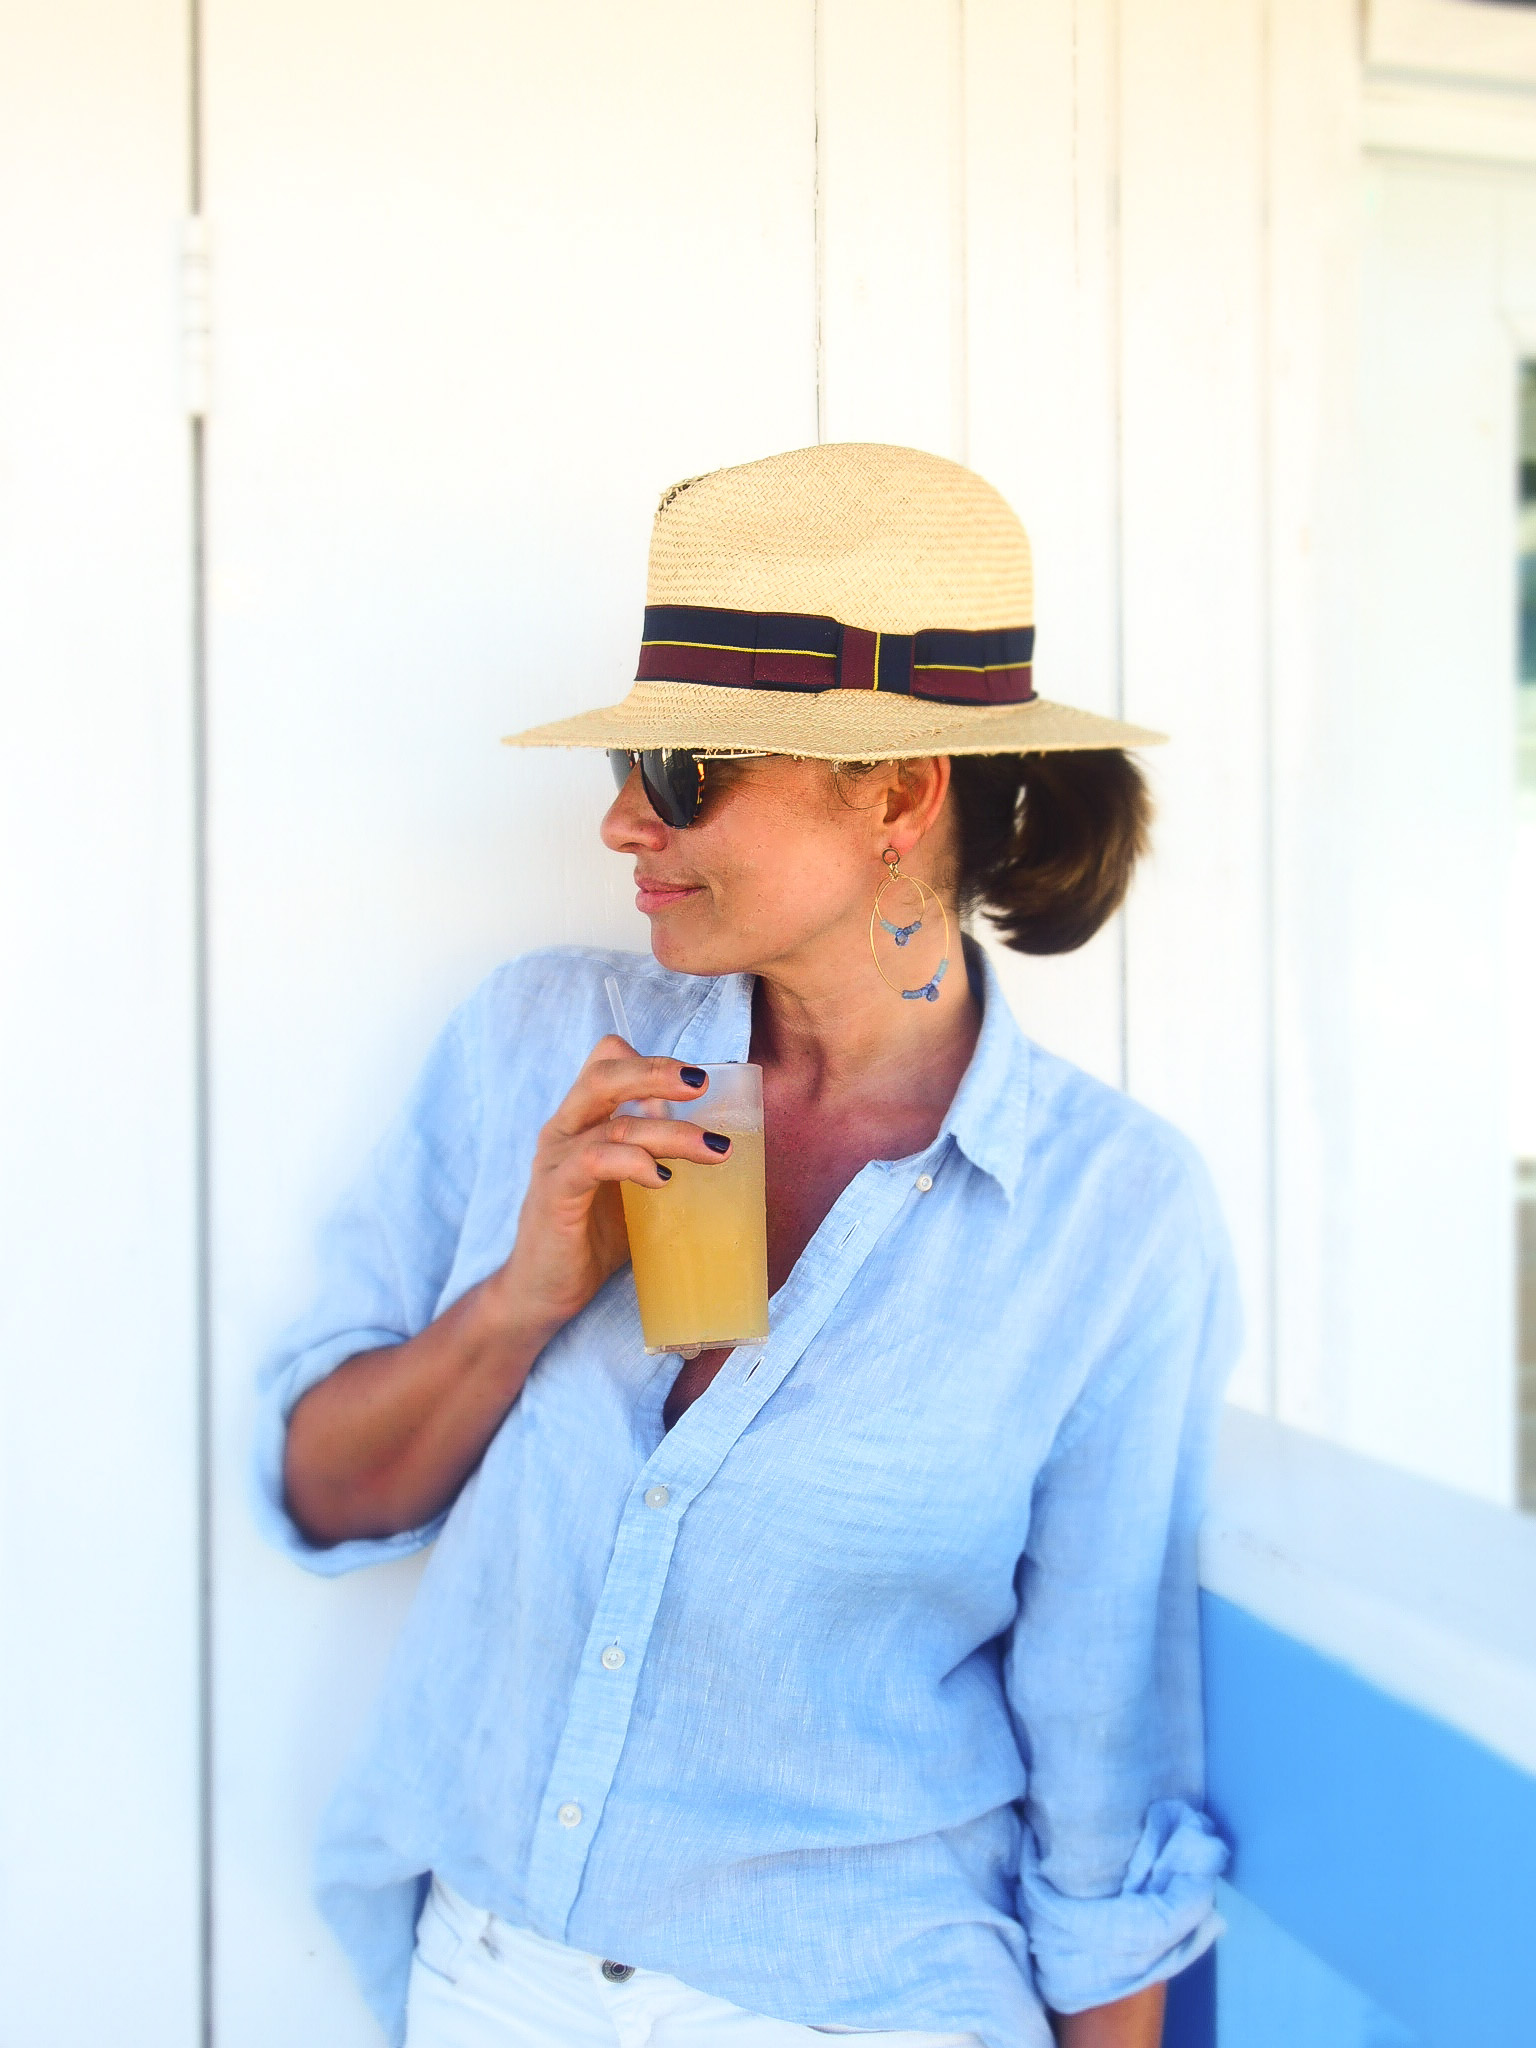 Claire aelizabeth wearing a blue linen shirt wearing earrings by Susan suell and drinking juice while overlooking the ocean